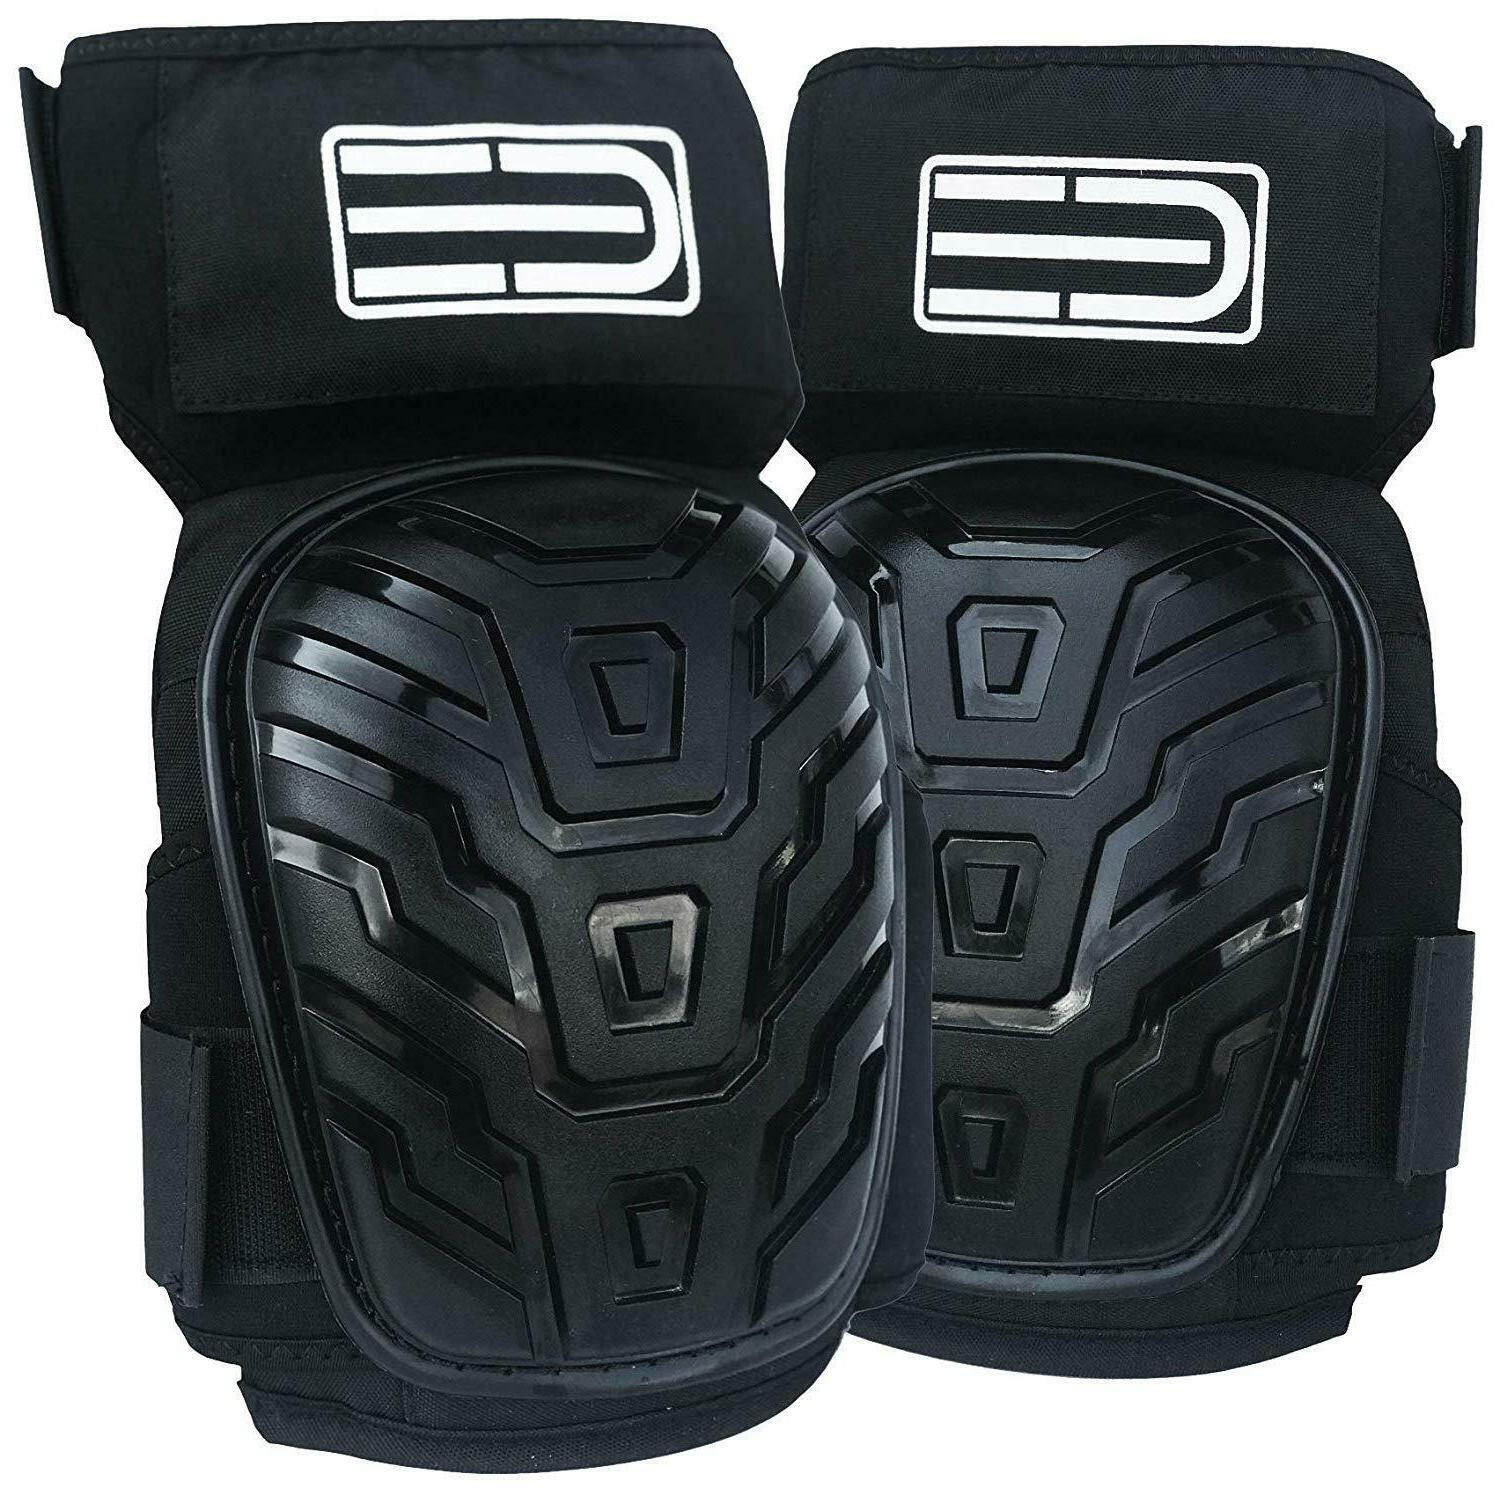 knee pads for work comfortable gel cushion